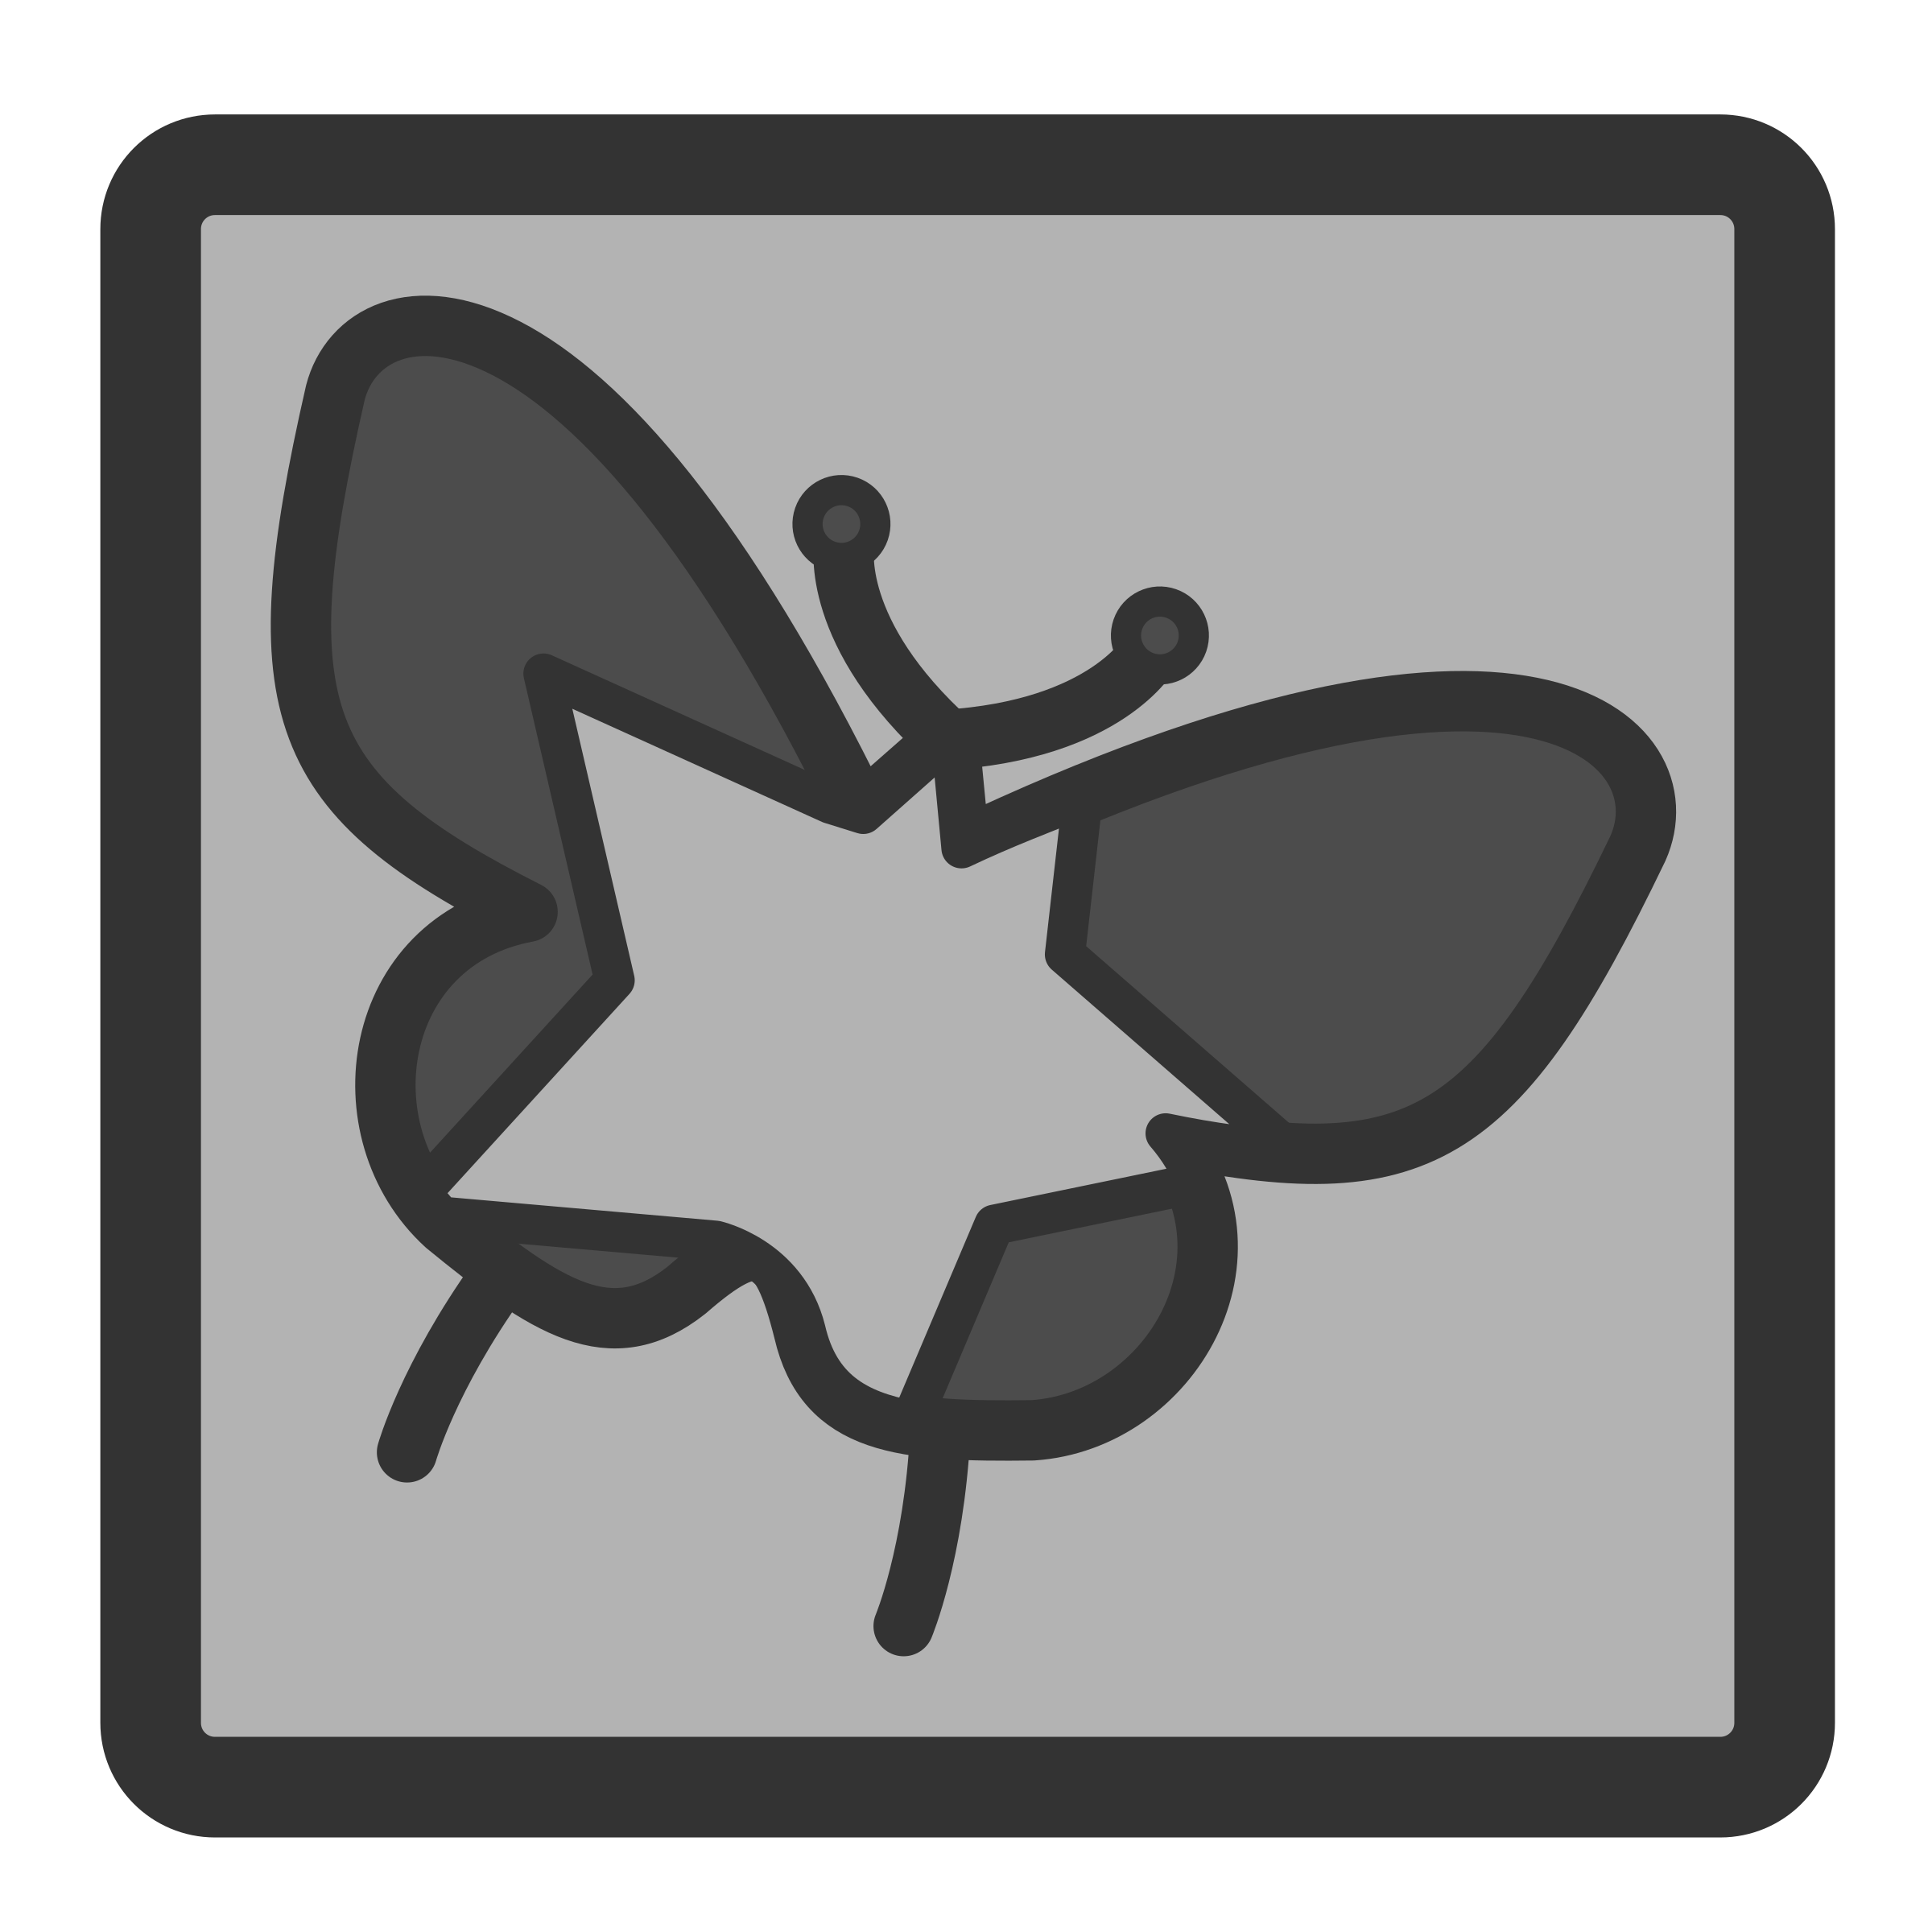 Clipart star butterfly. Ft big image png